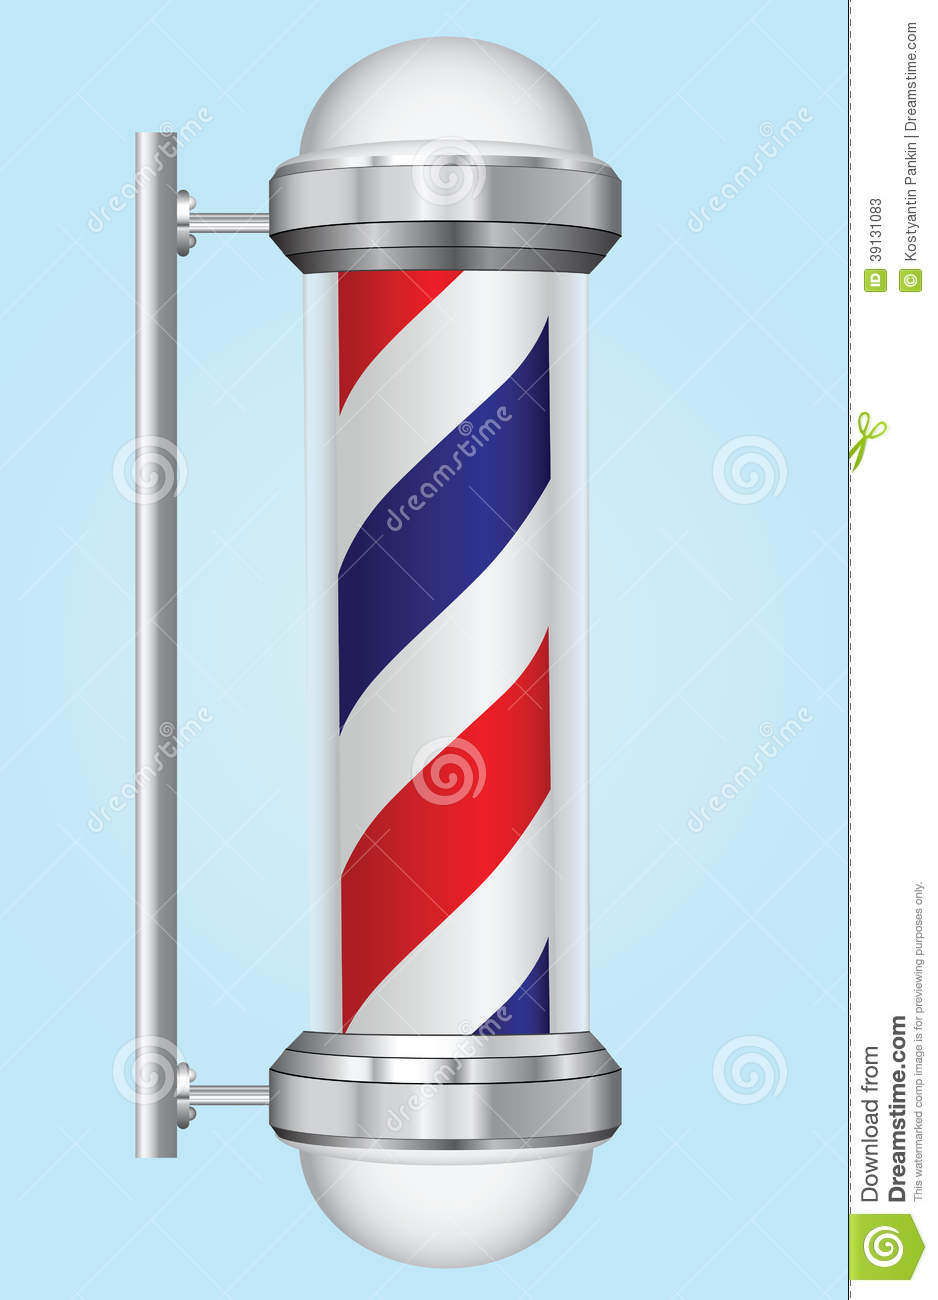 Sign Barber Stock Vector - Image: 39131083